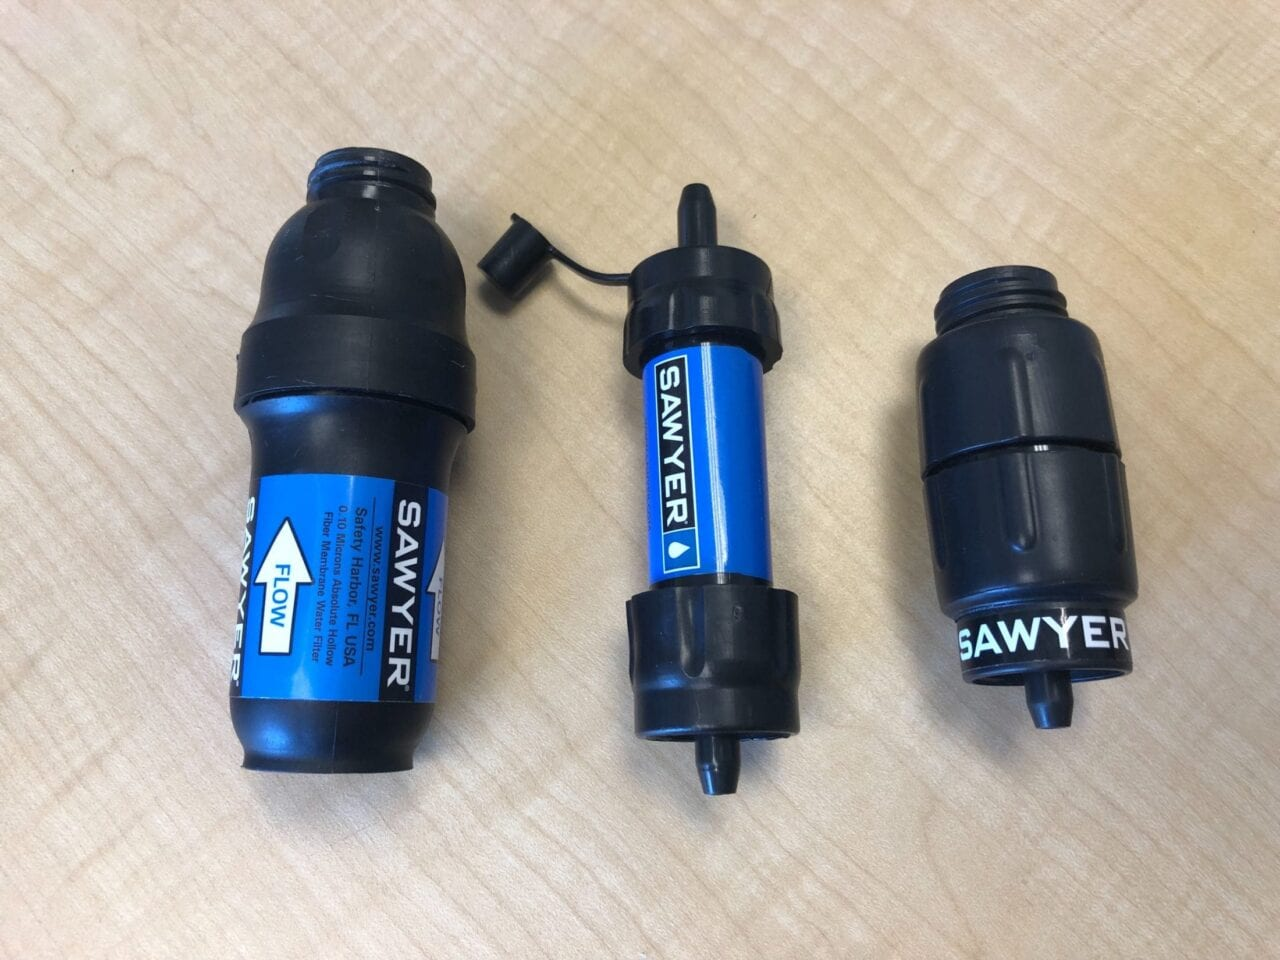 3 Sawyer Squeeze Filters: Left to right are Sawyer Squeeze original, Sawyer Mini Squeeze, and Sawyer Micro Squeeze